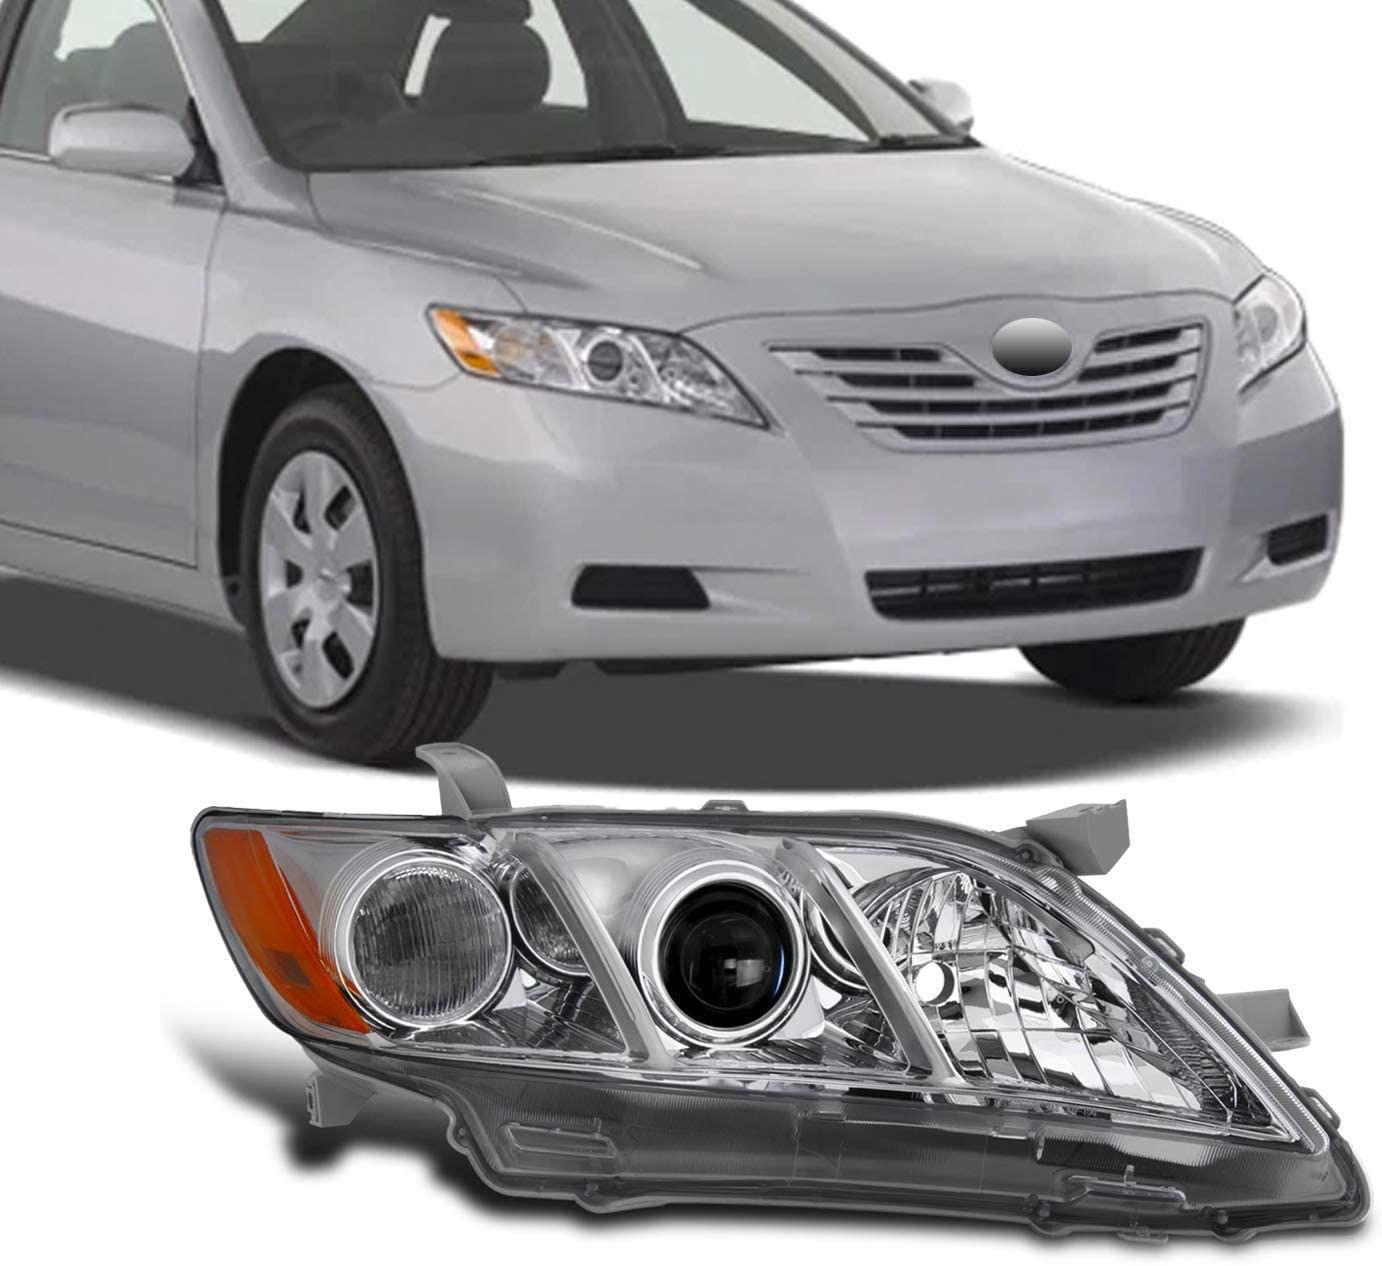 AmeriLite for 2007-2009 Toyota Camry Halogen Type OE Chrome Projector Replacement Headlight Assembly Pair Passenger and Driver Side